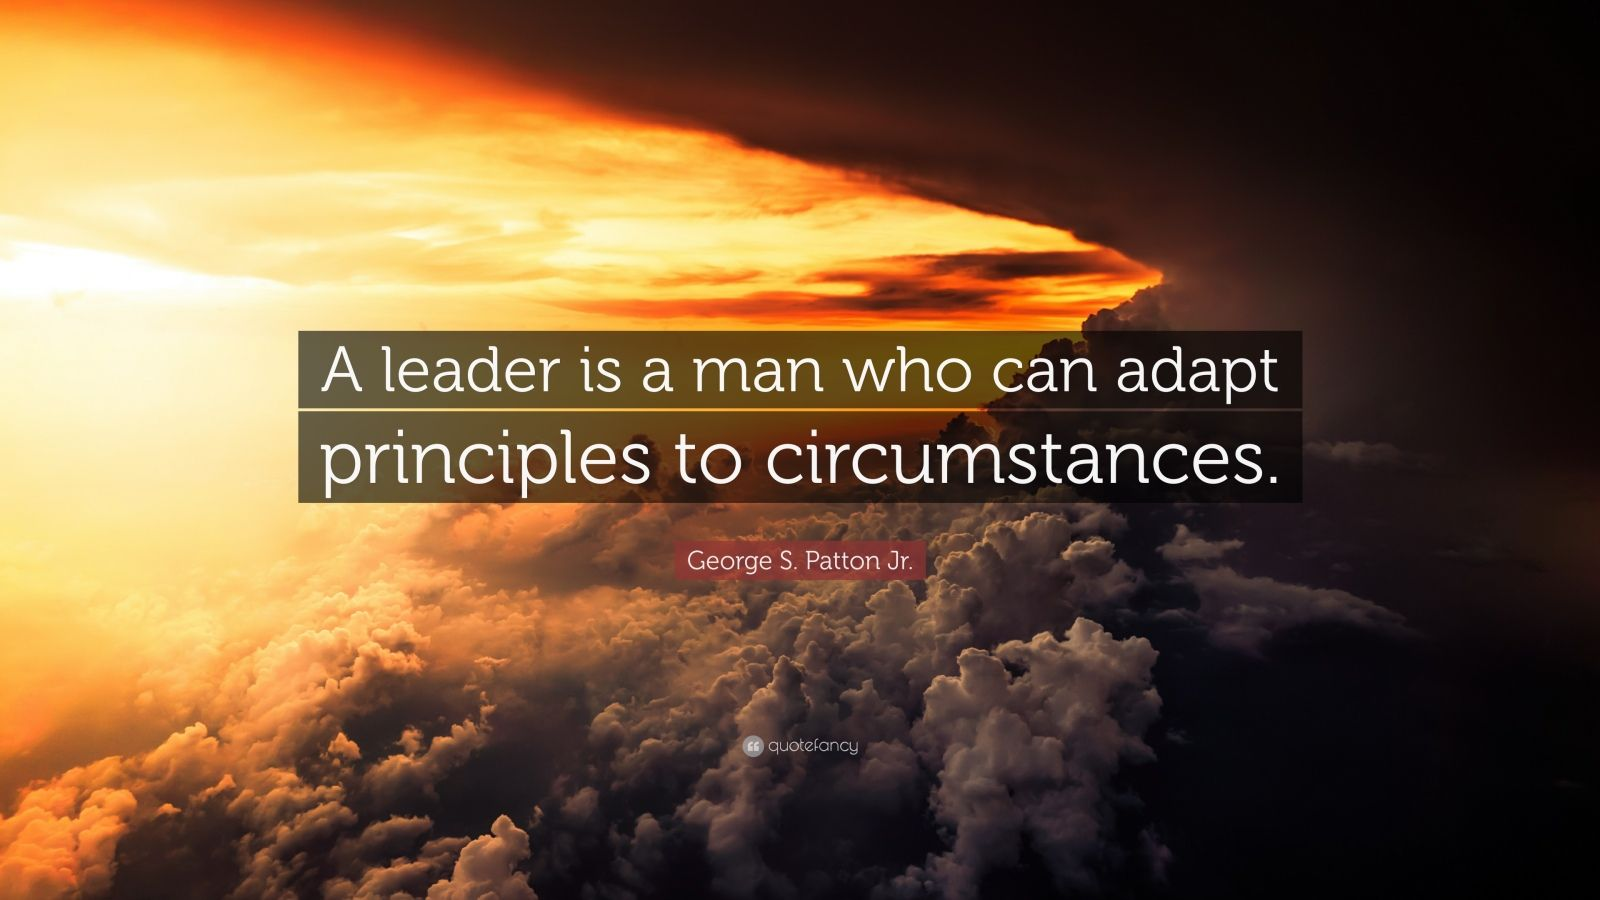 """George S. Patton Jr. Quote: """"A leader is a man who can adapt principles to circumstances."""""""